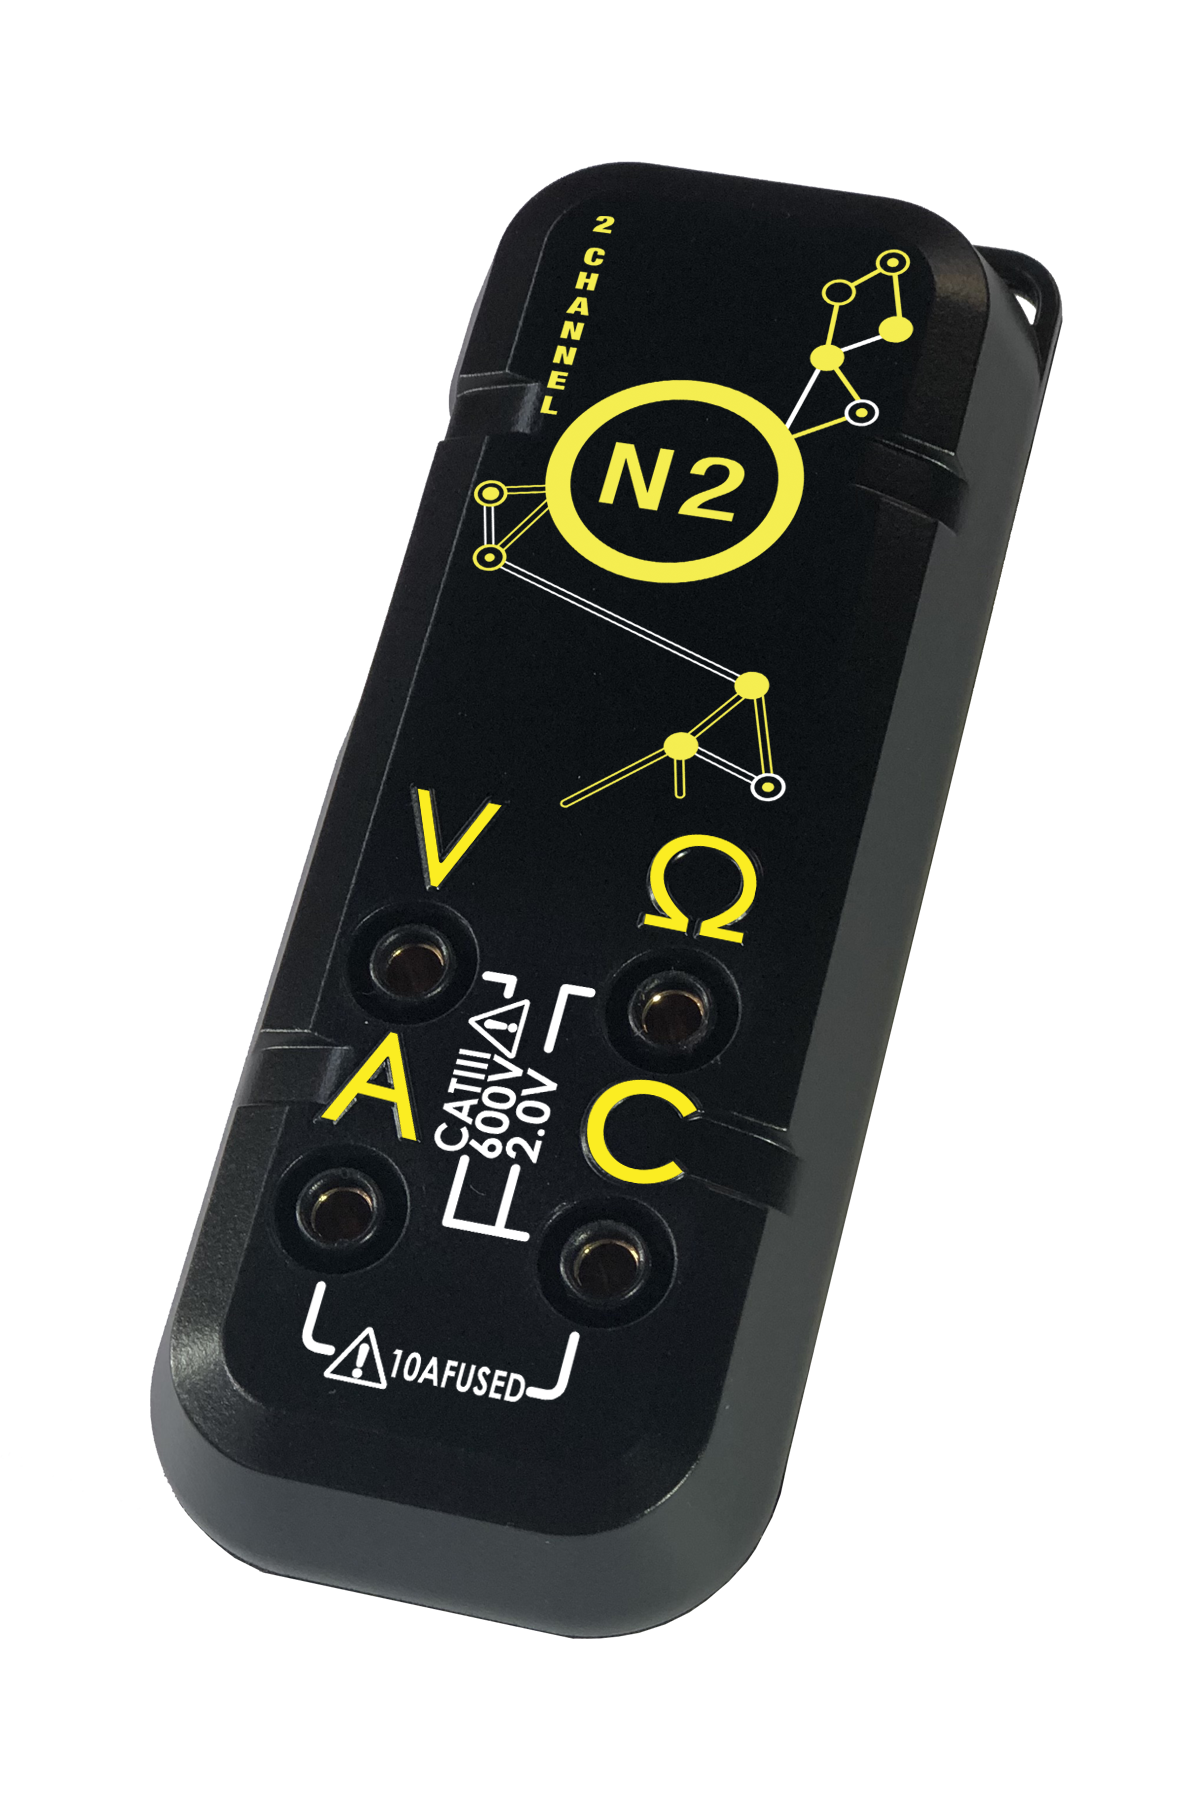 Curien has released the N2